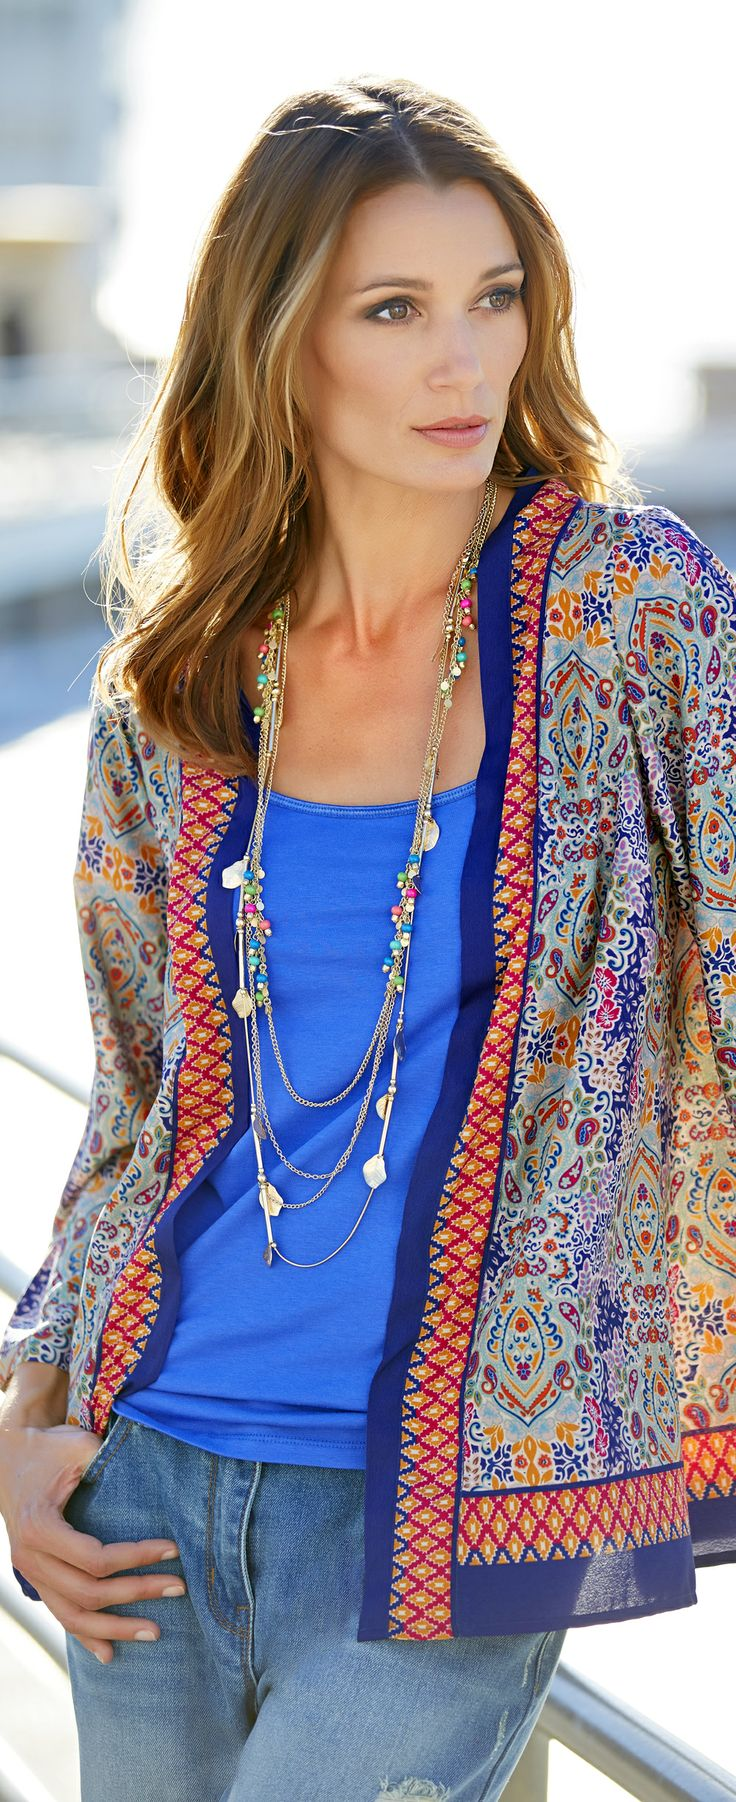 5 Easy to Wear Kimono Styles - What's up With All the Kimonos? (article) http://boomerinas.com/2013/12/04/5-easy-to-wear-kimono-styles-whats-up-with-all-the-kimonos/